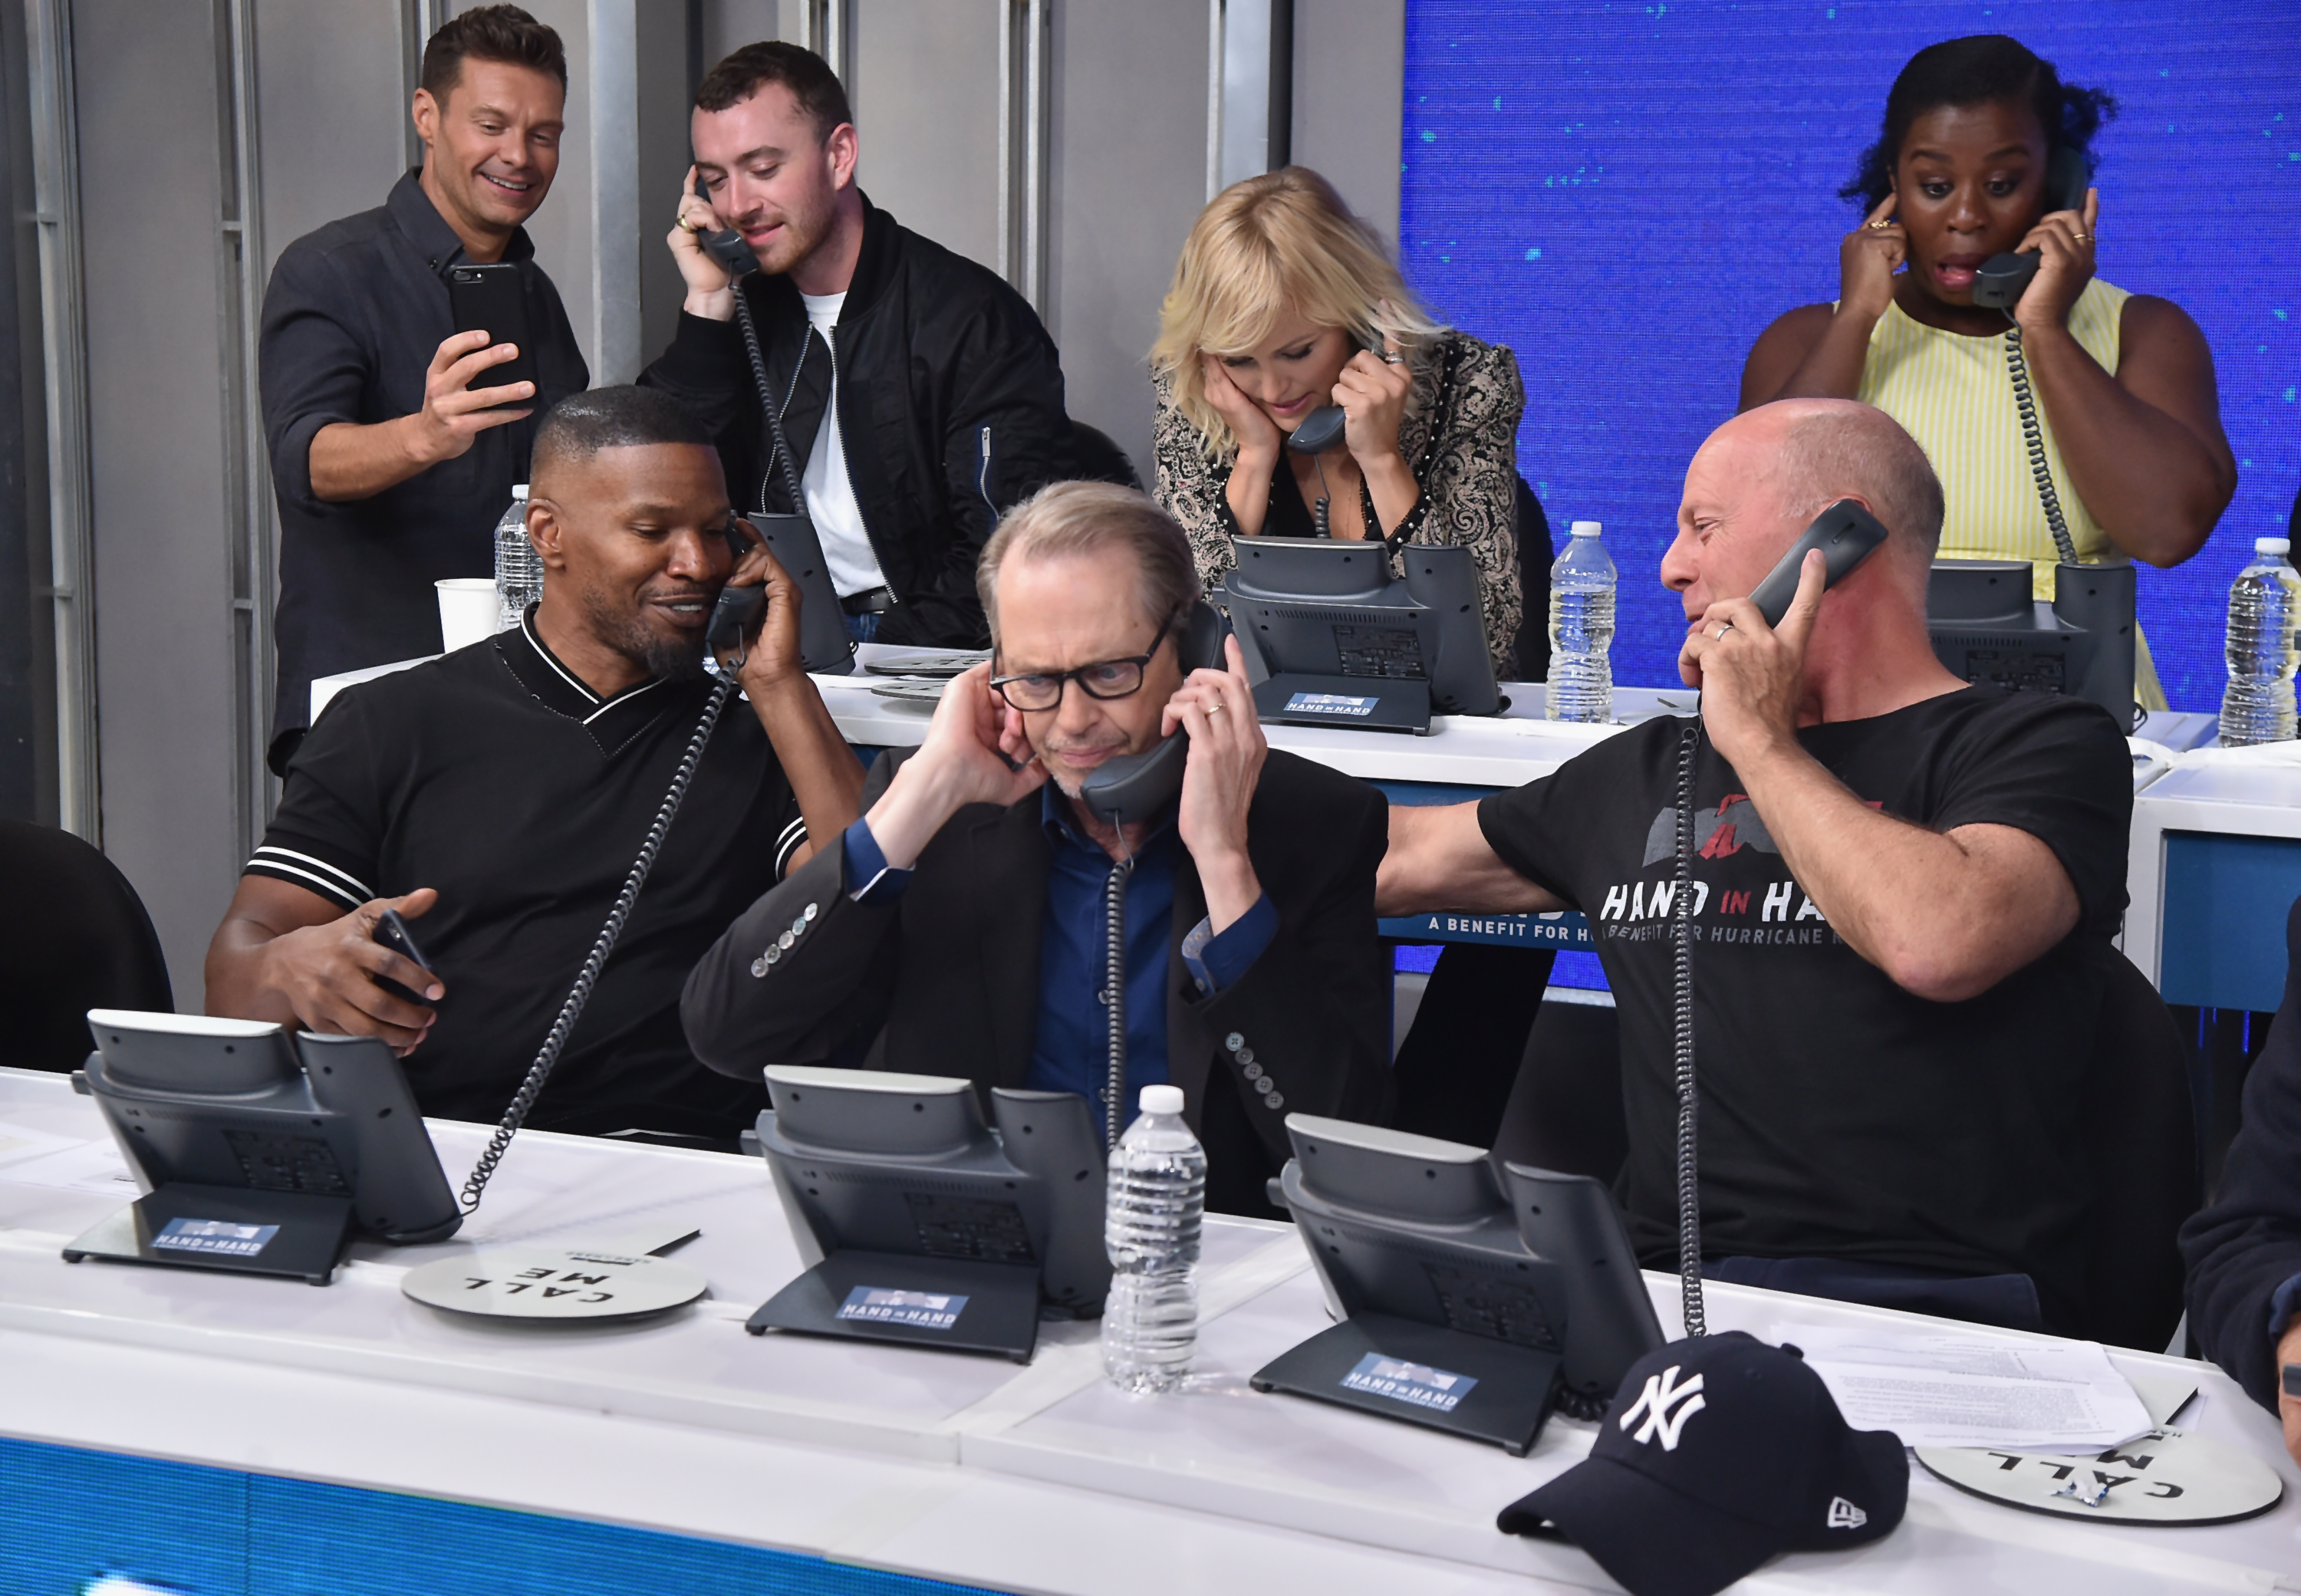 "<div class=""meta image-caption""><div class=""origin-logo origin-image none""><span>none</span></div><span class=""caption-text"">Sam Smith, Jamie Foxx, Steve Buscemi, and Bruce Willis caption at ABC News' Good Morning America Times Square Studio on September 12, 2017 in New York City. (Theo Wargo/Hand in Hand/Getty Images)</span></div>"